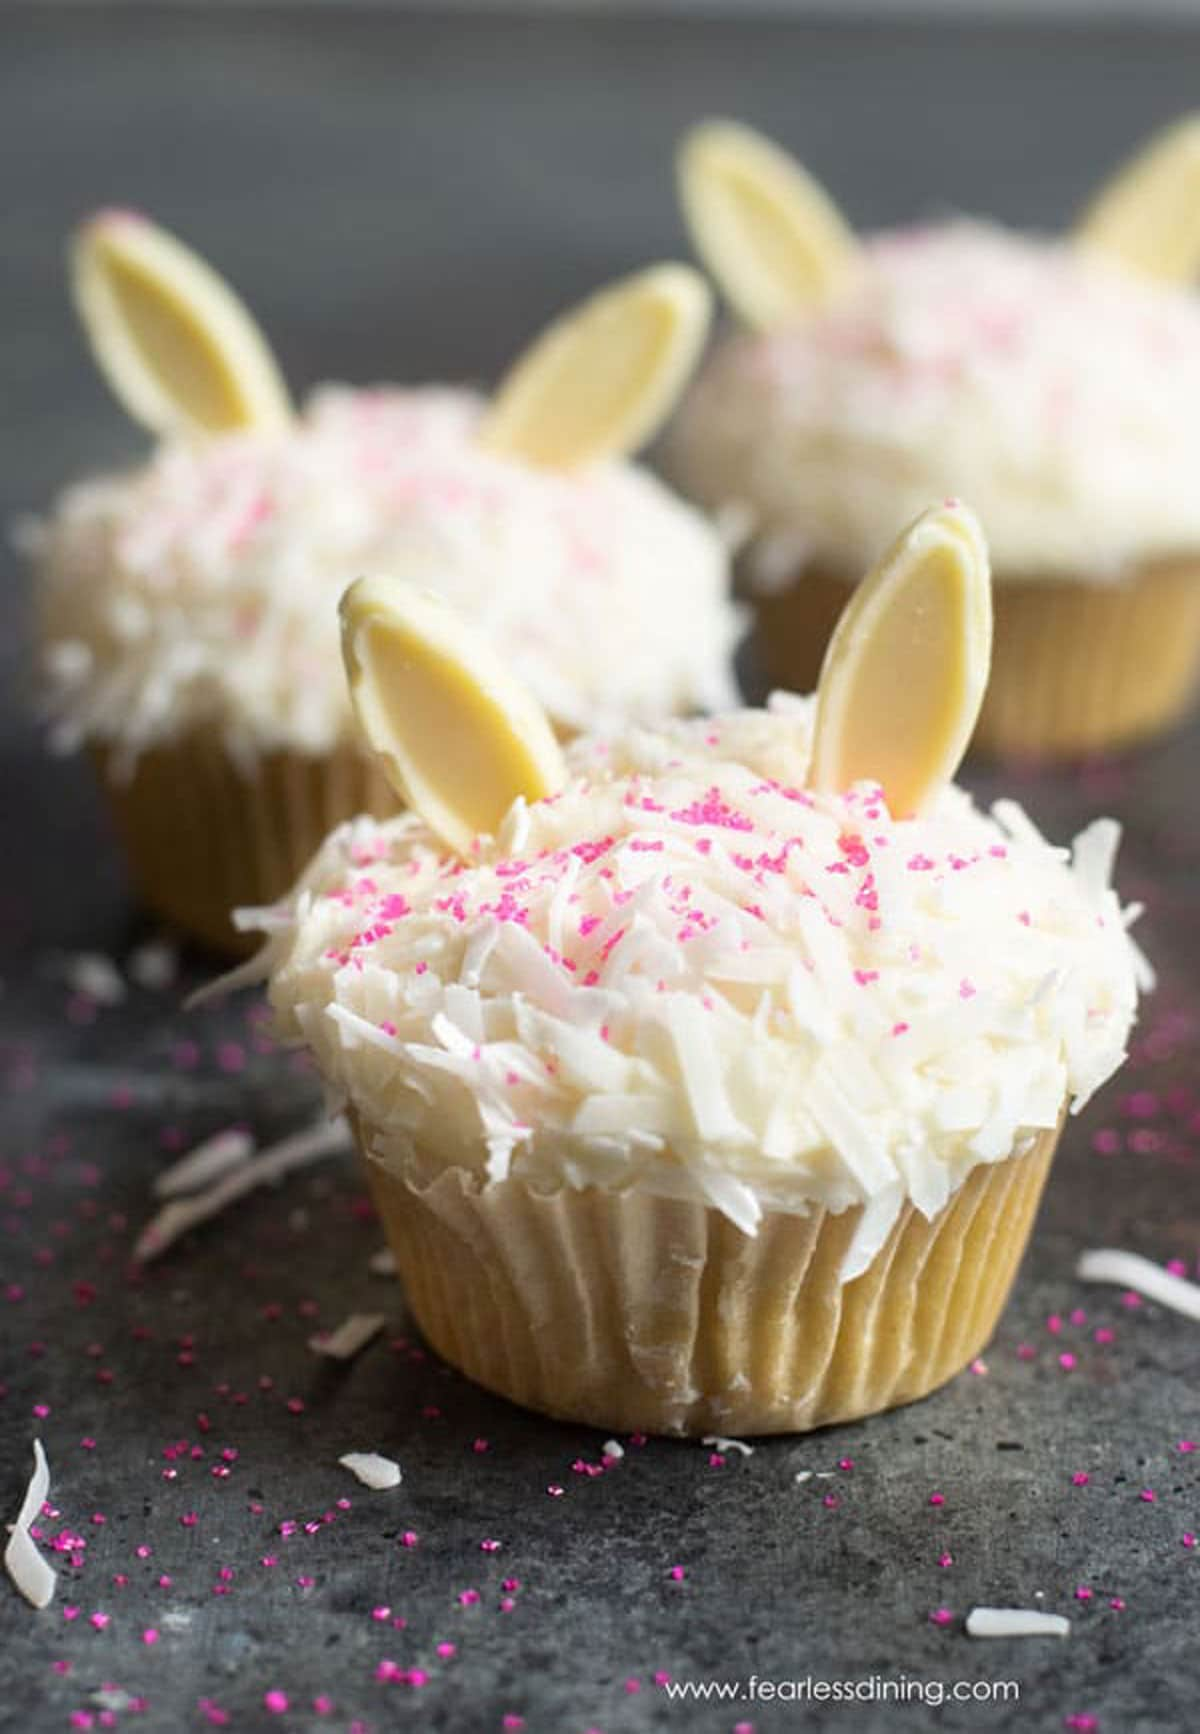 coconut cupcakes decorated with white chocolate bunny ears for Easter